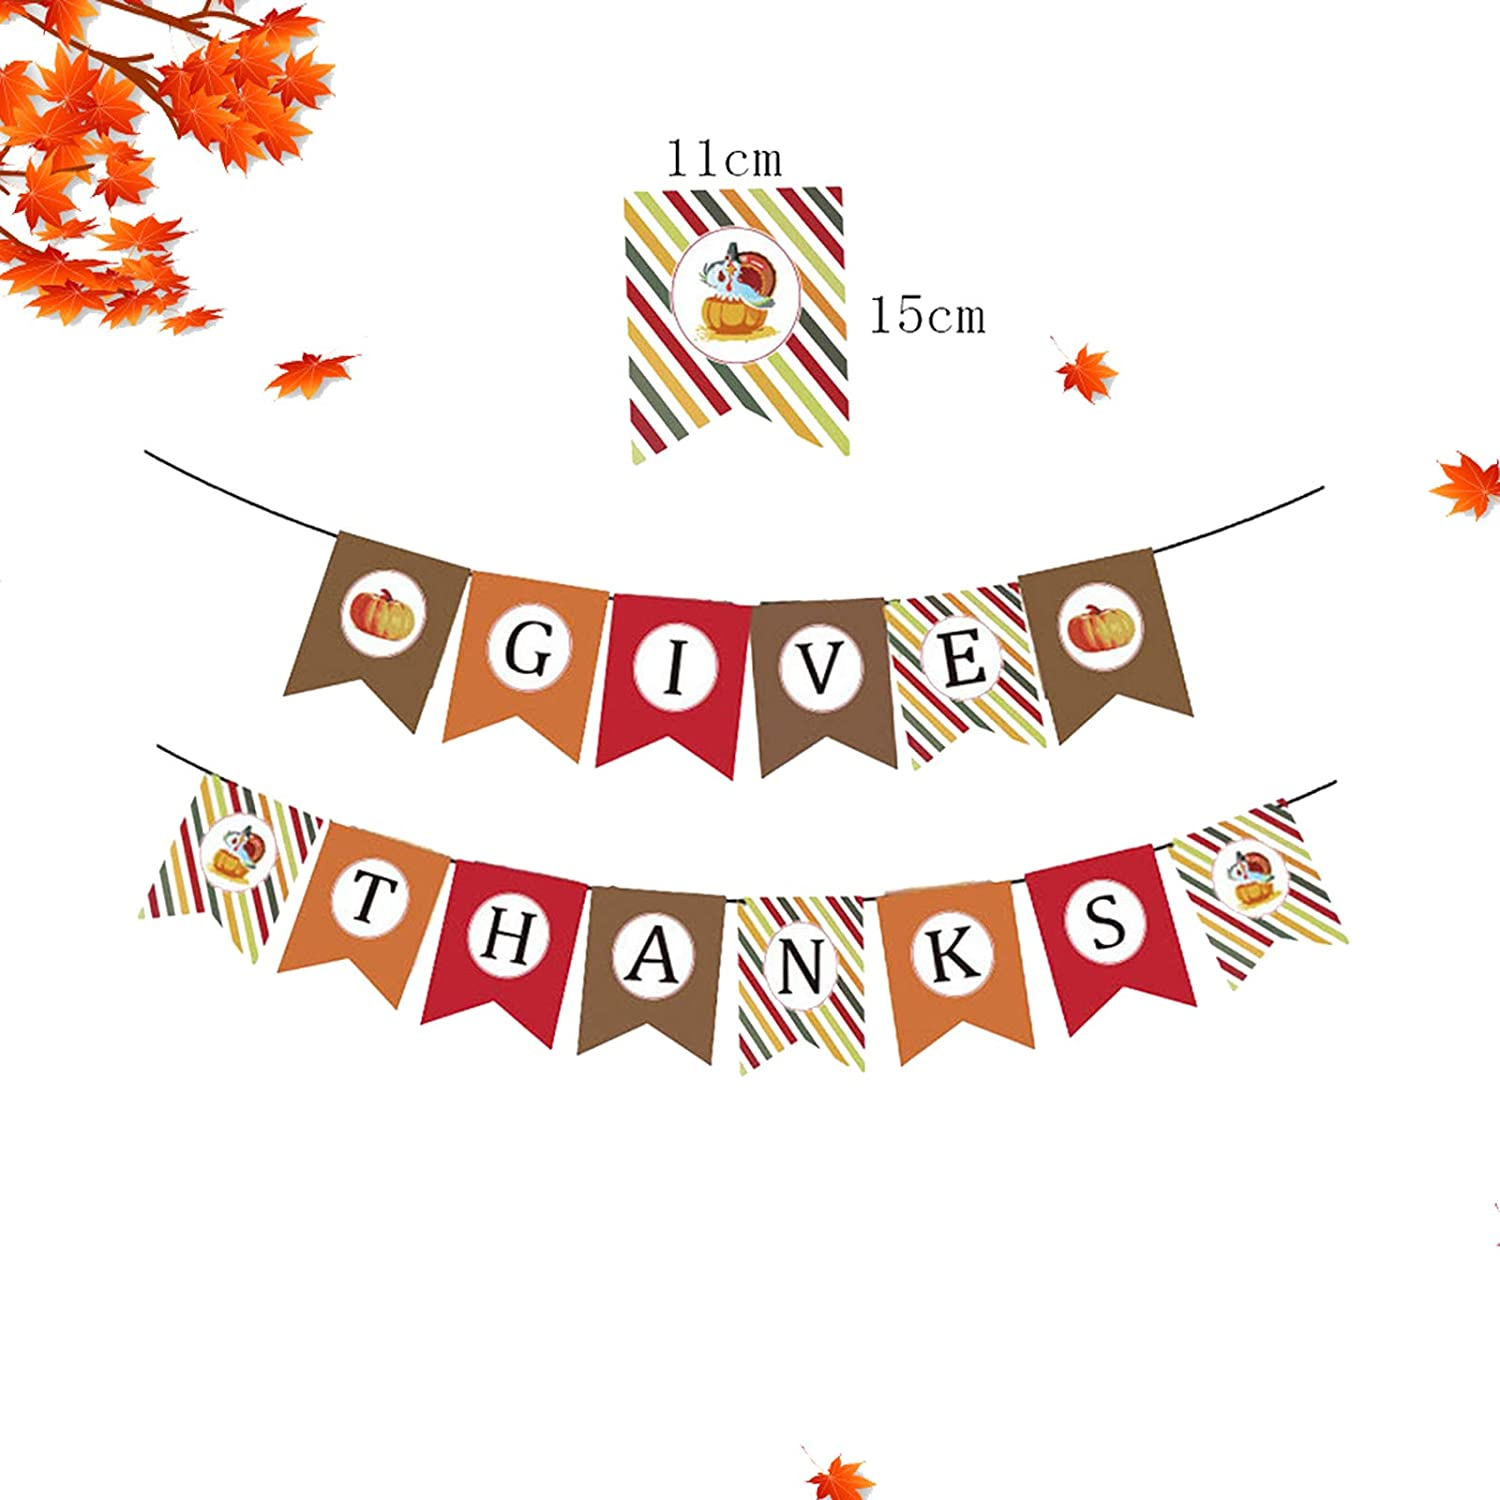 Eseres Thanks Give Paperboard Banner Decorations, 2 Pcs Thanksgiving Fall Pumpkins Maple Leaves Paper Banner Decor for for Home Office School Party Decor Thanksgiving Decoration